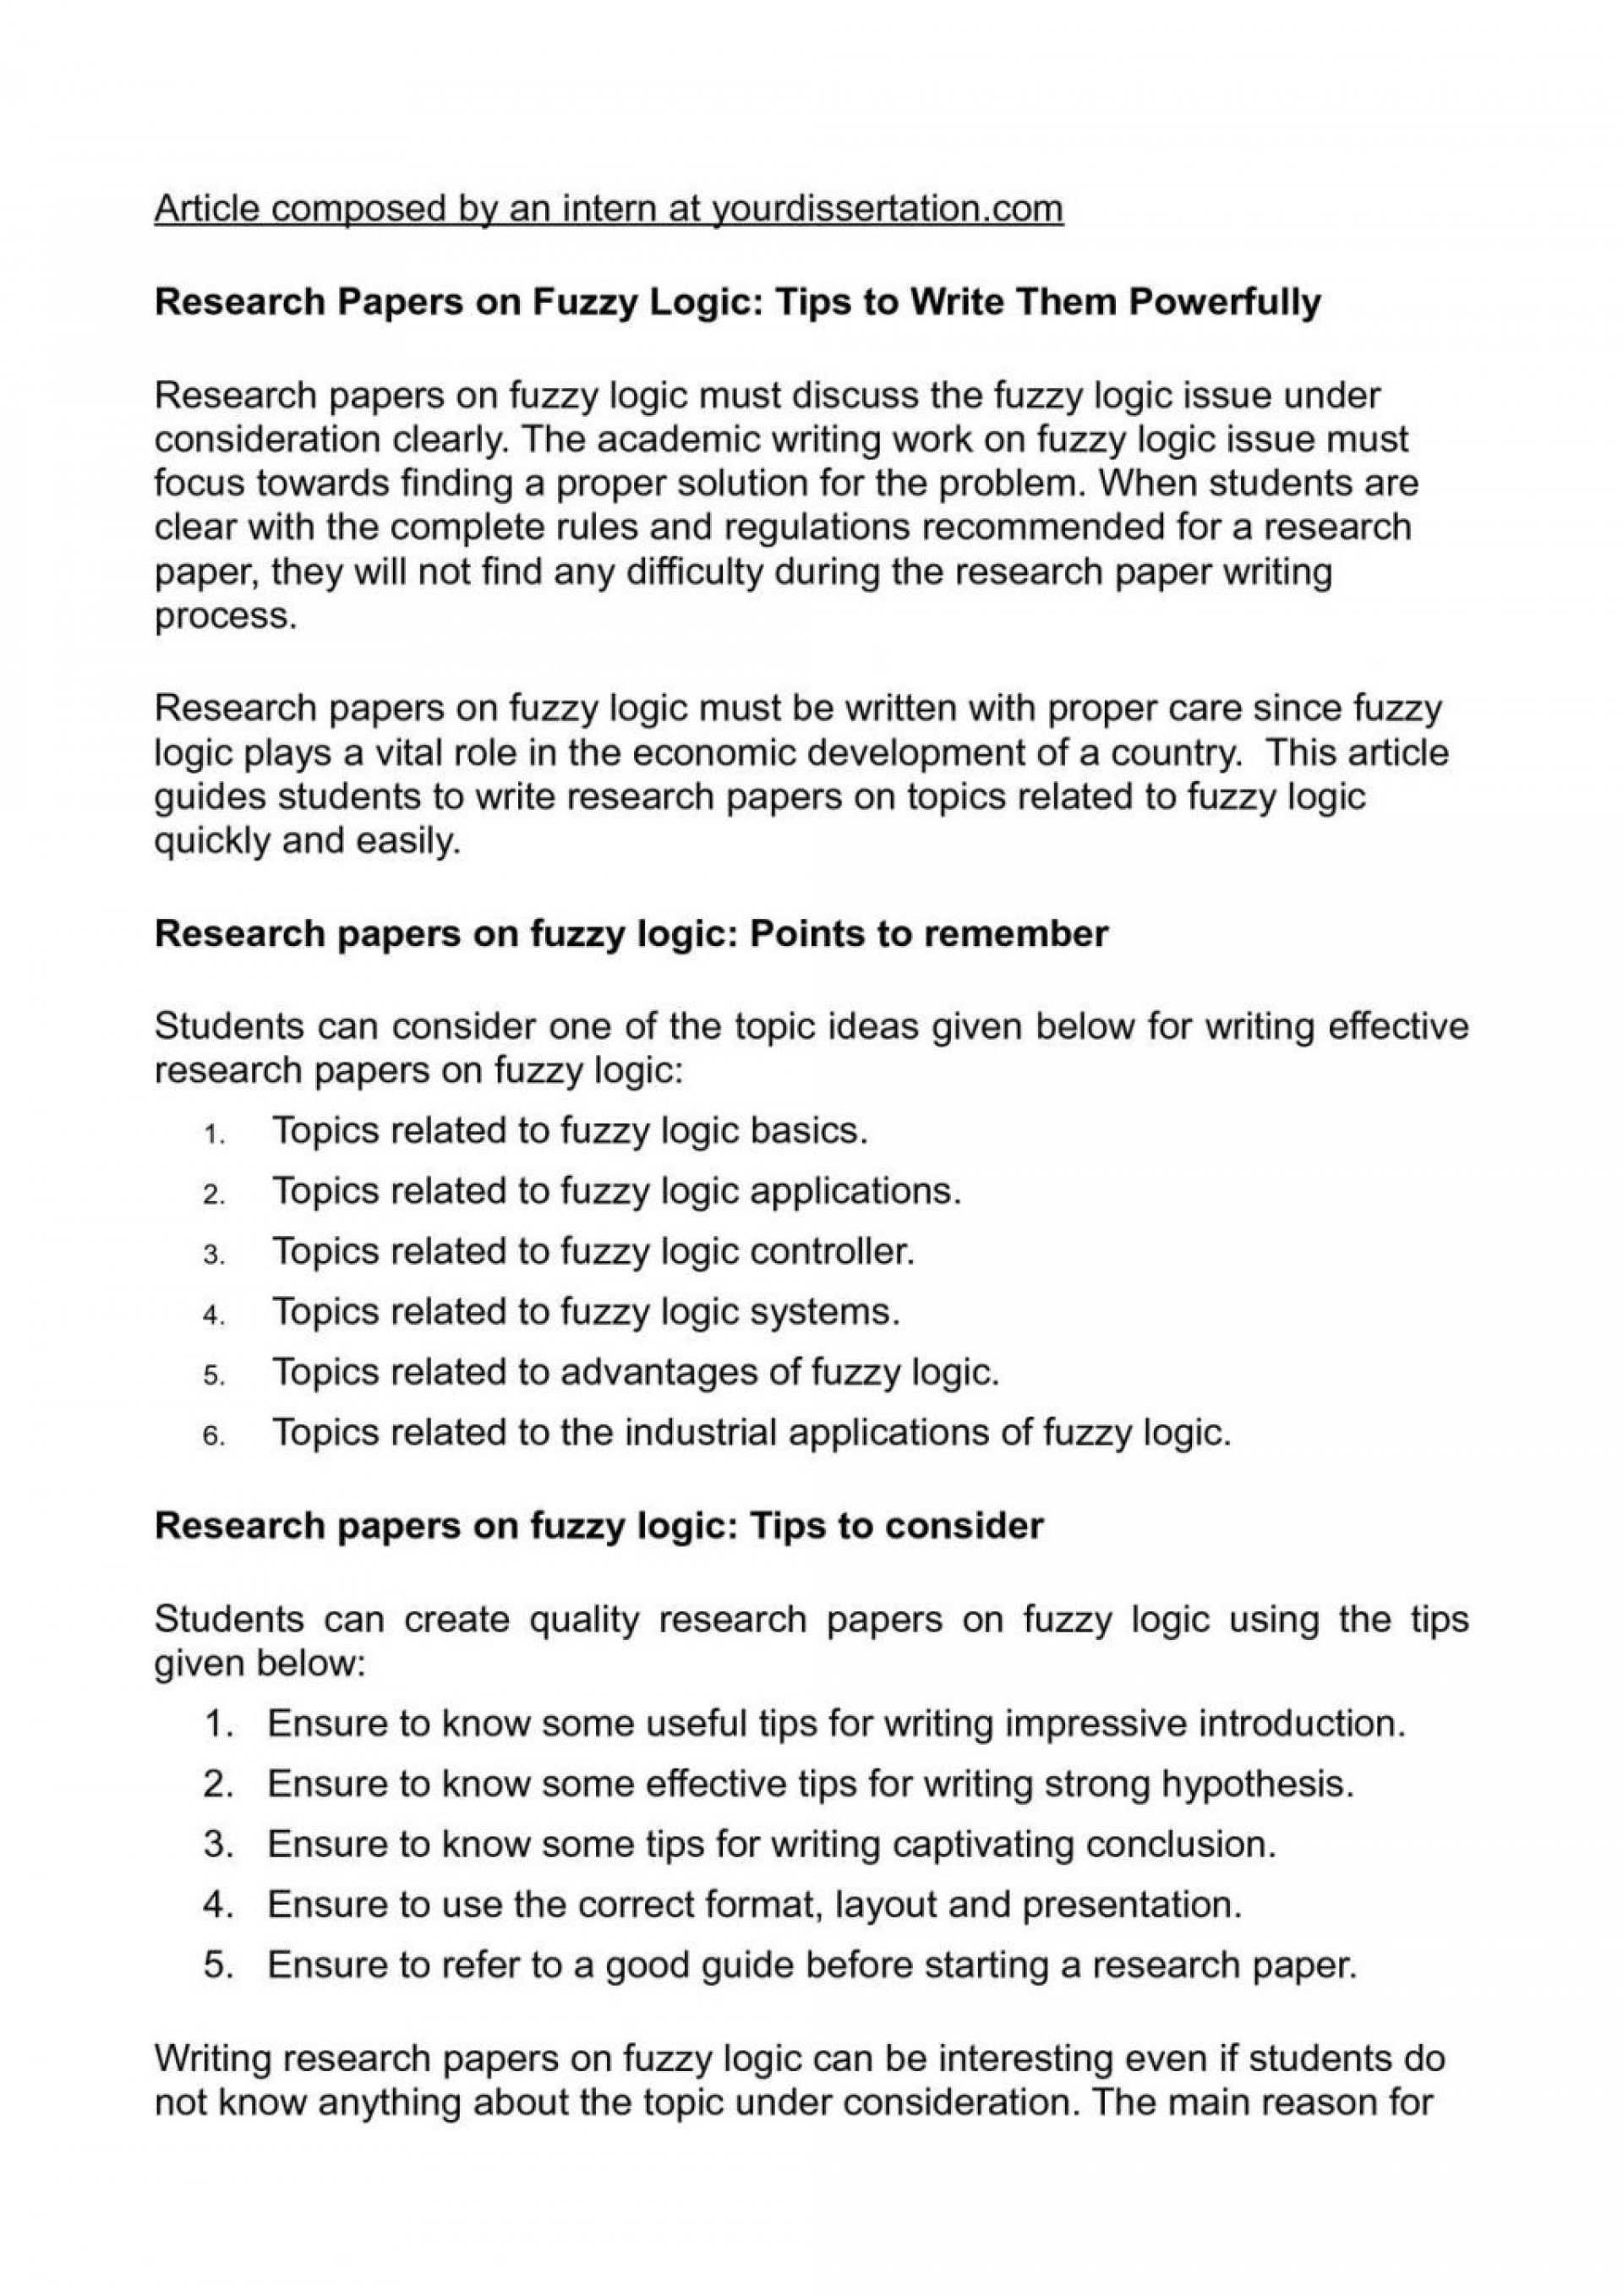 026 20research Paper Samples Fun Topics To Write On Psychology Economics20 1024x1449 About For Wonderful A Research History Controversial 1920